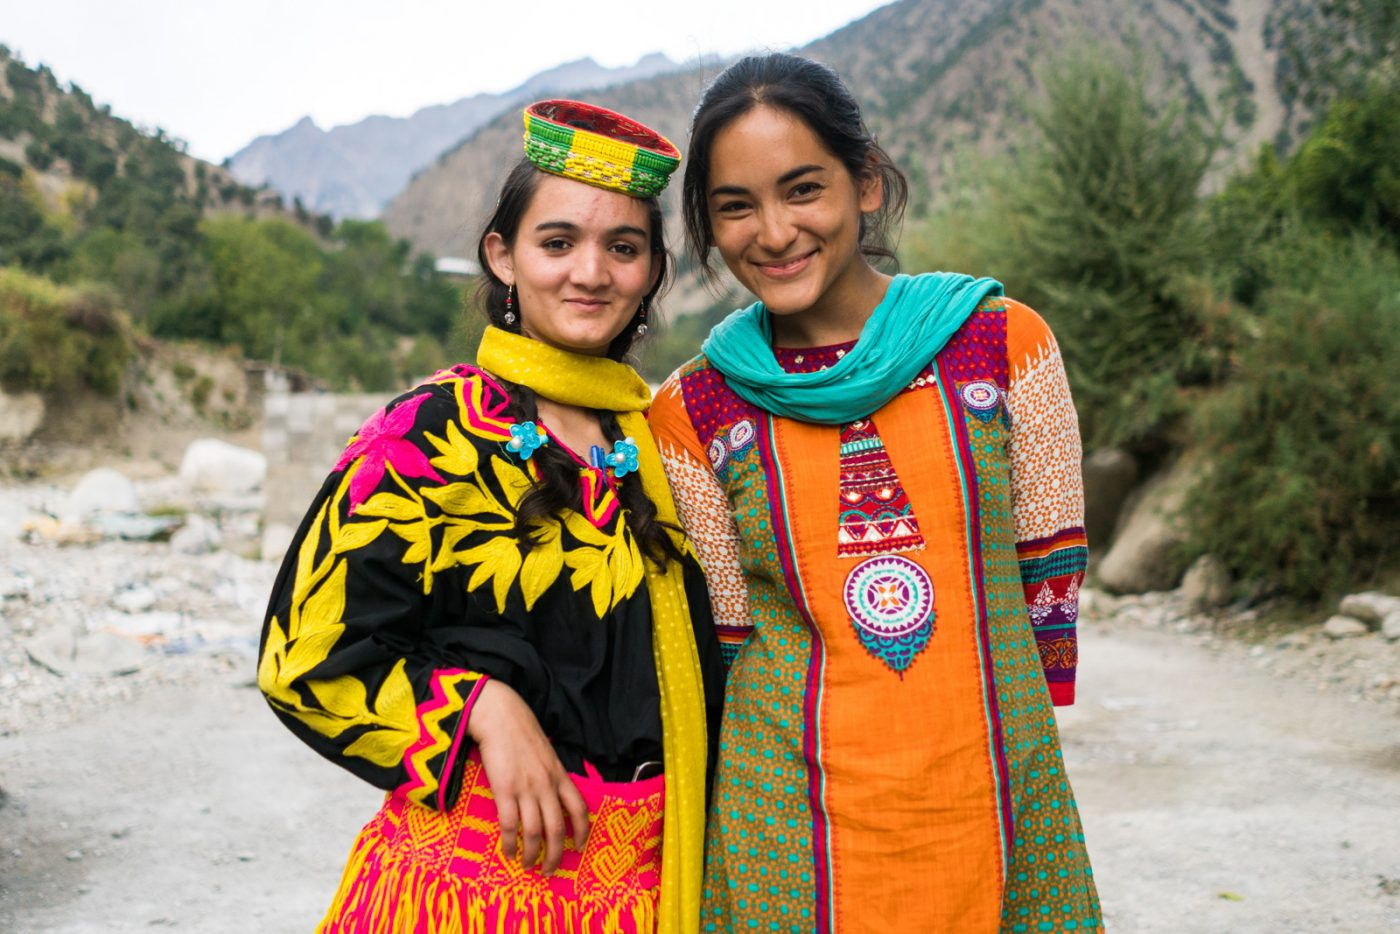 A colorful combination with one of the Kalashi girls